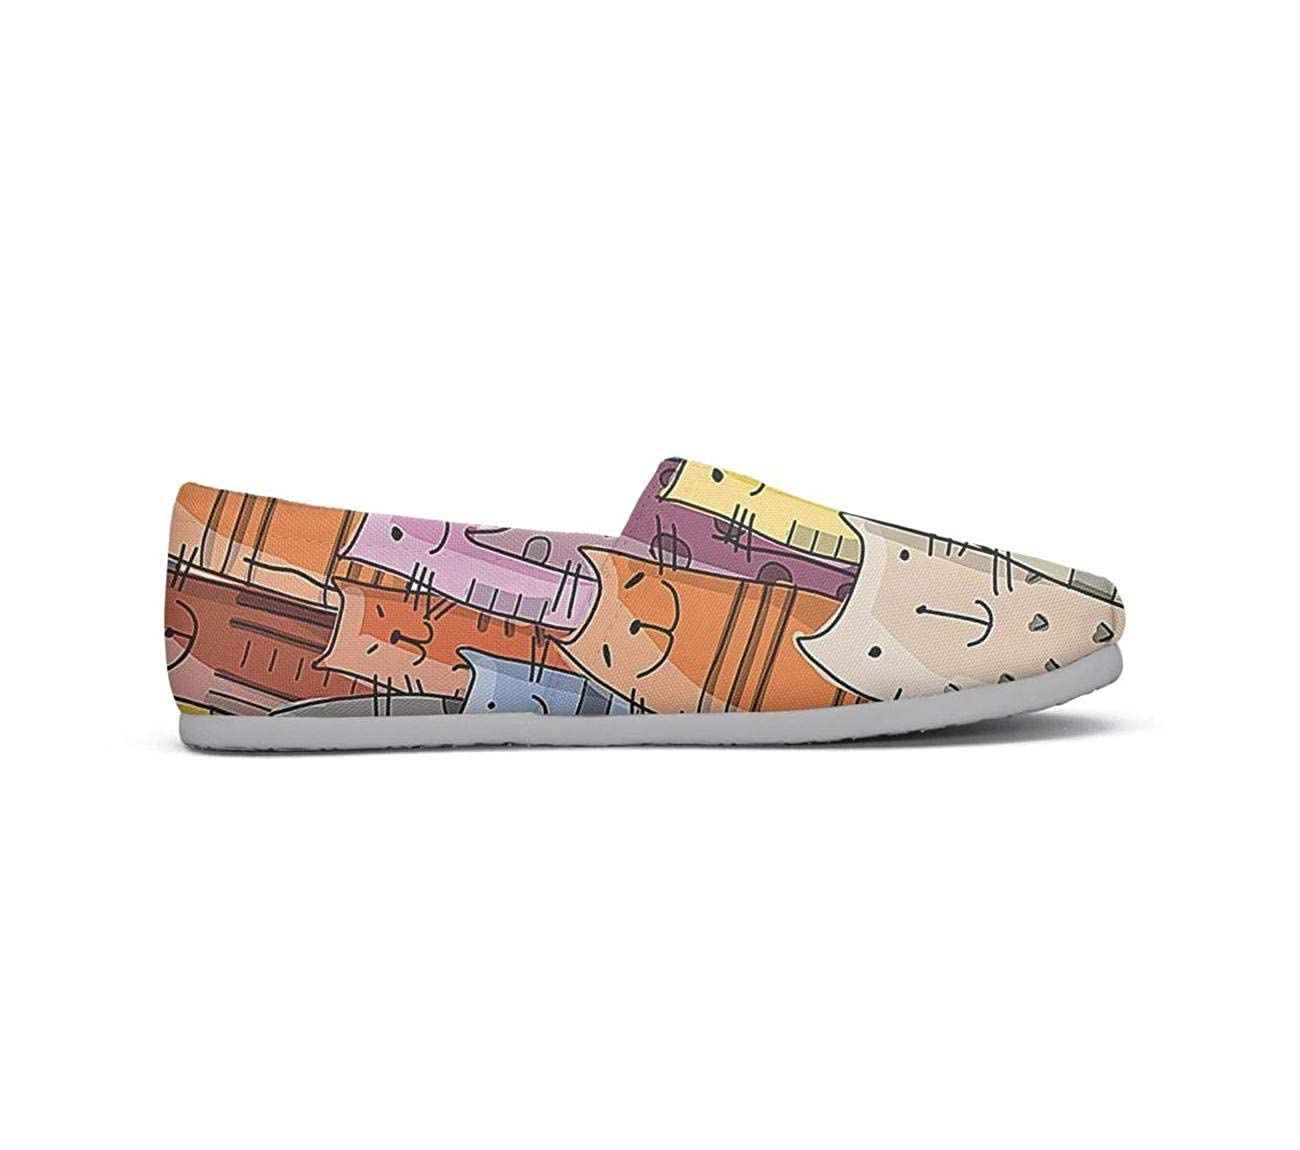 nkfbx Funny Animals Kitten Casual Flat Trainers for Girls Travel